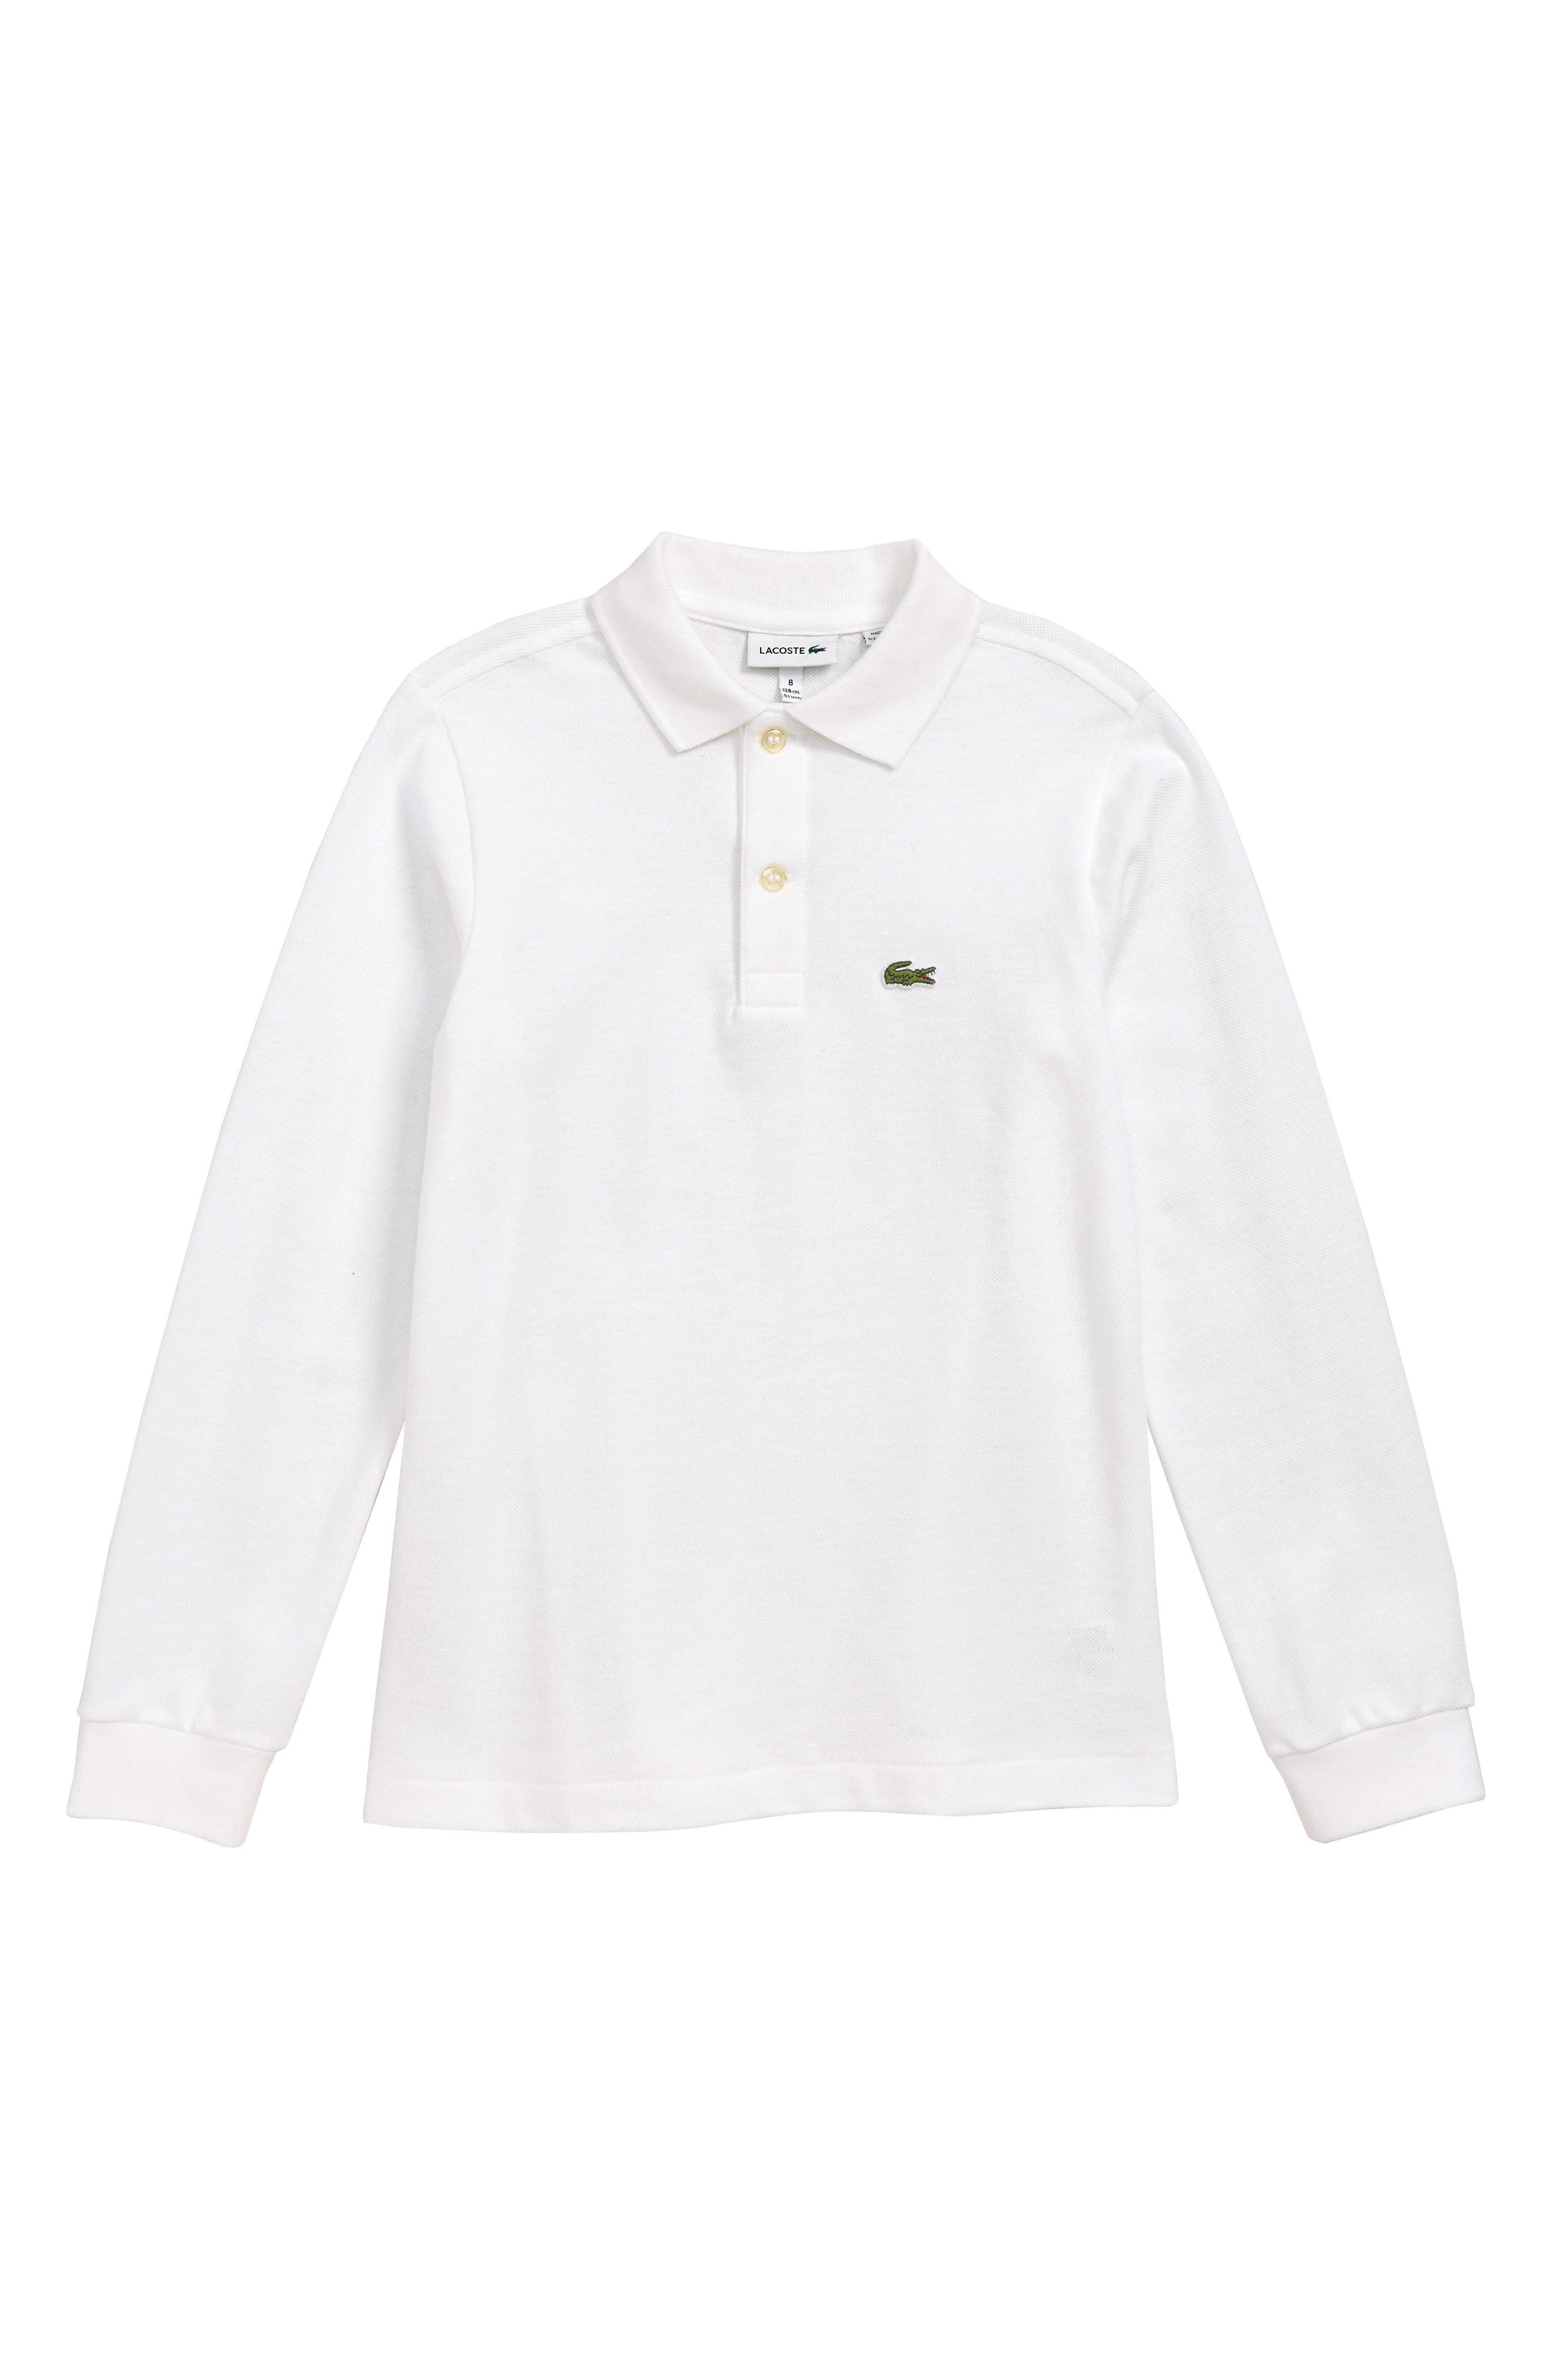 Boys Lacoste Solid Long Sleeve Polo Size 14Y  White